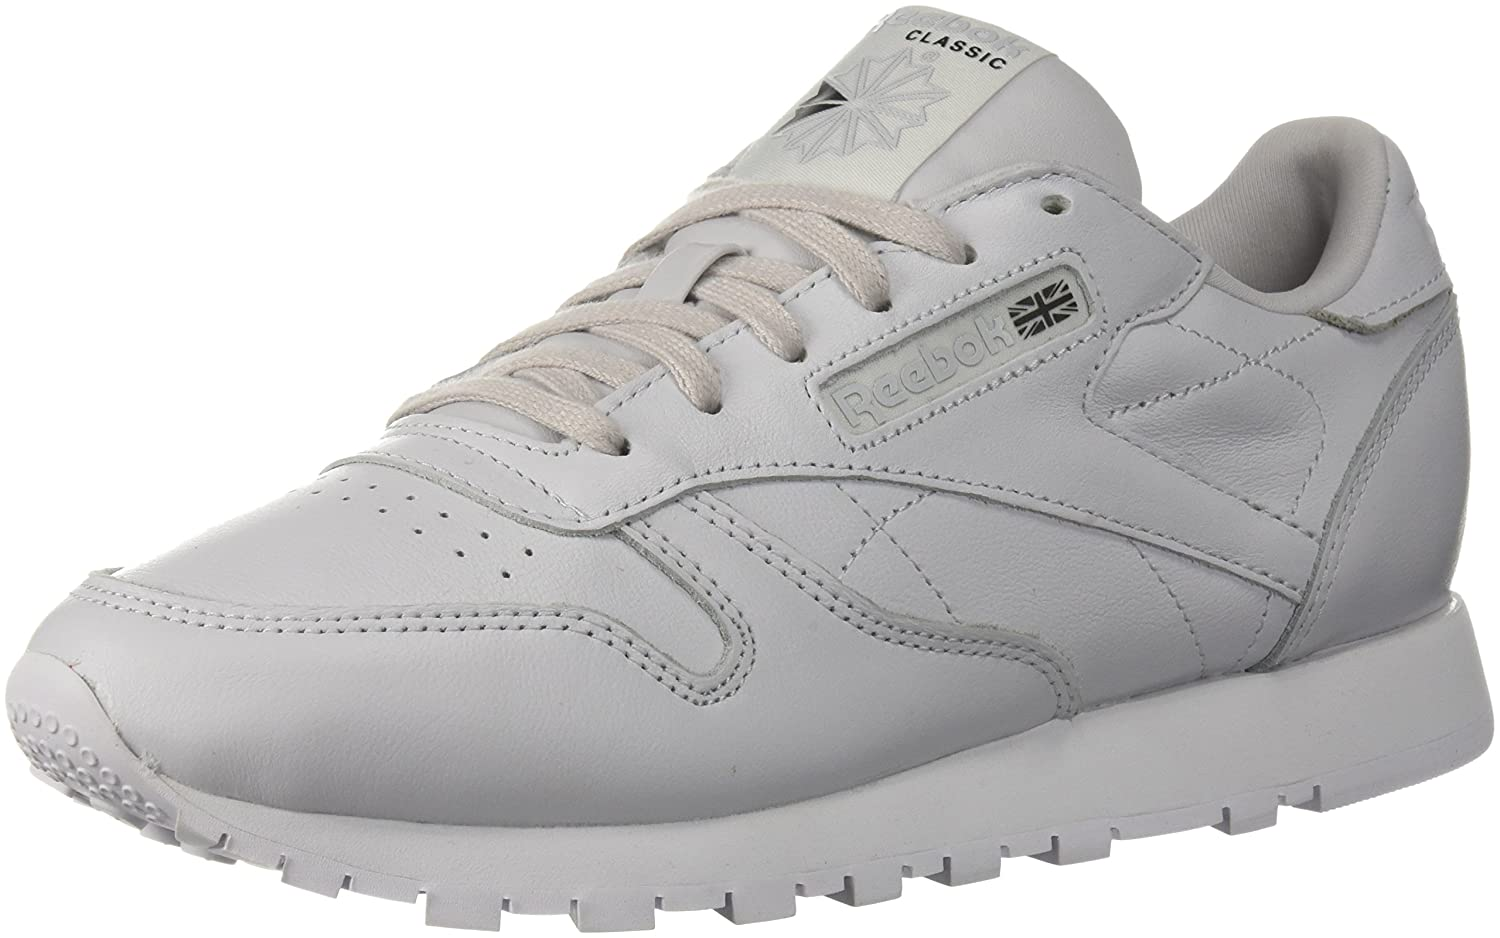 Reebok Women's Cl Lthr X Face Walking Shoe B072JNN7HM 9 B(M) US|Porcelain/White/Black